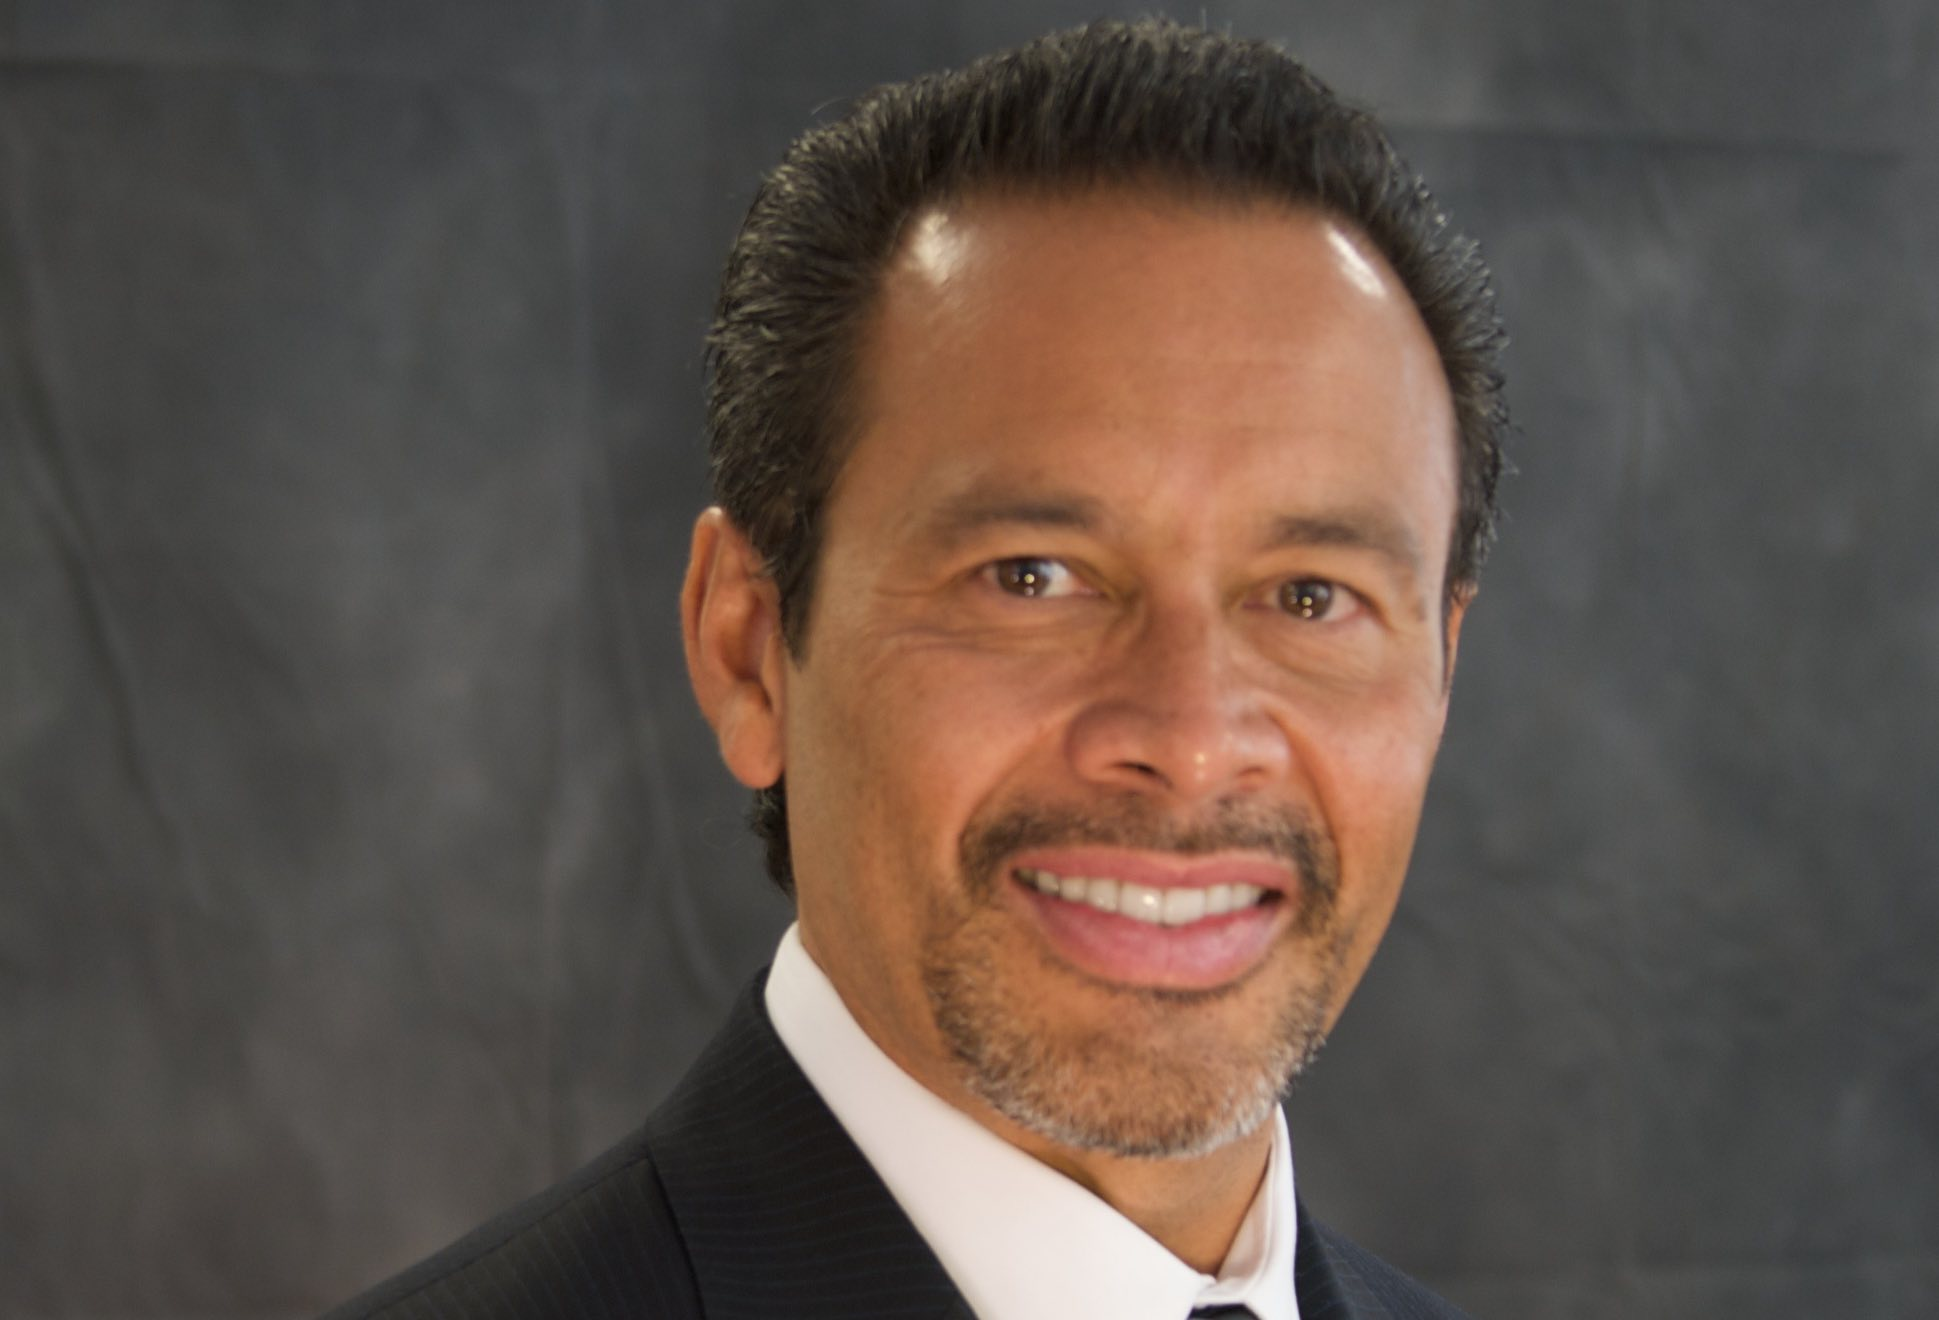 One on One with CohnReznick's Frank Banda